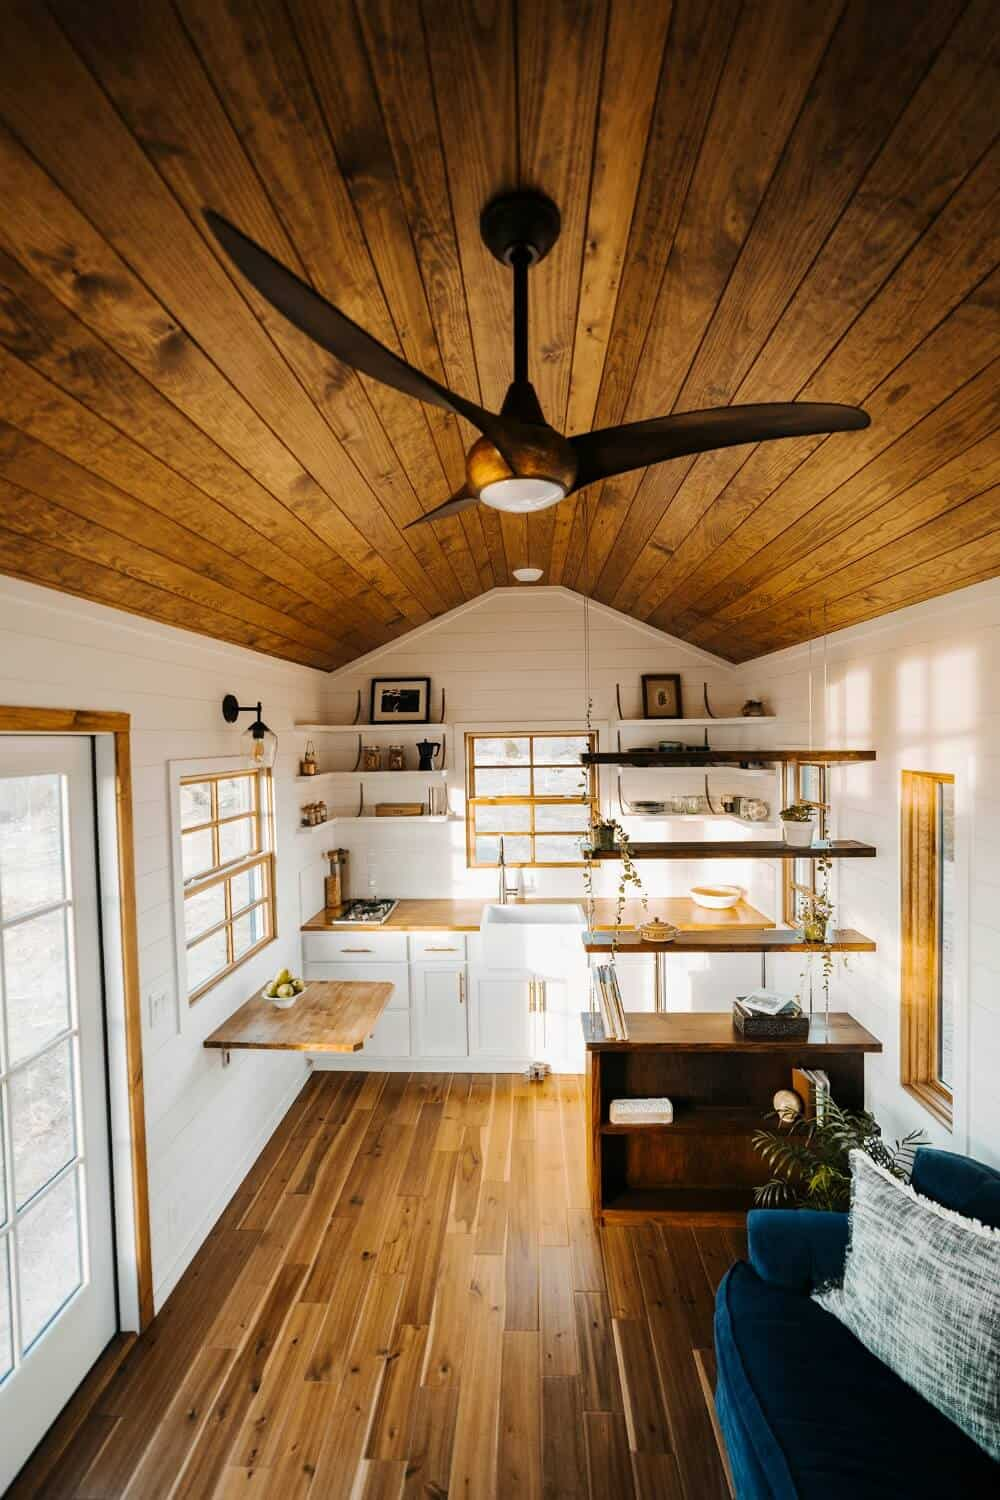 9 Adorable Tiny Homes For Sale The Wayward Home